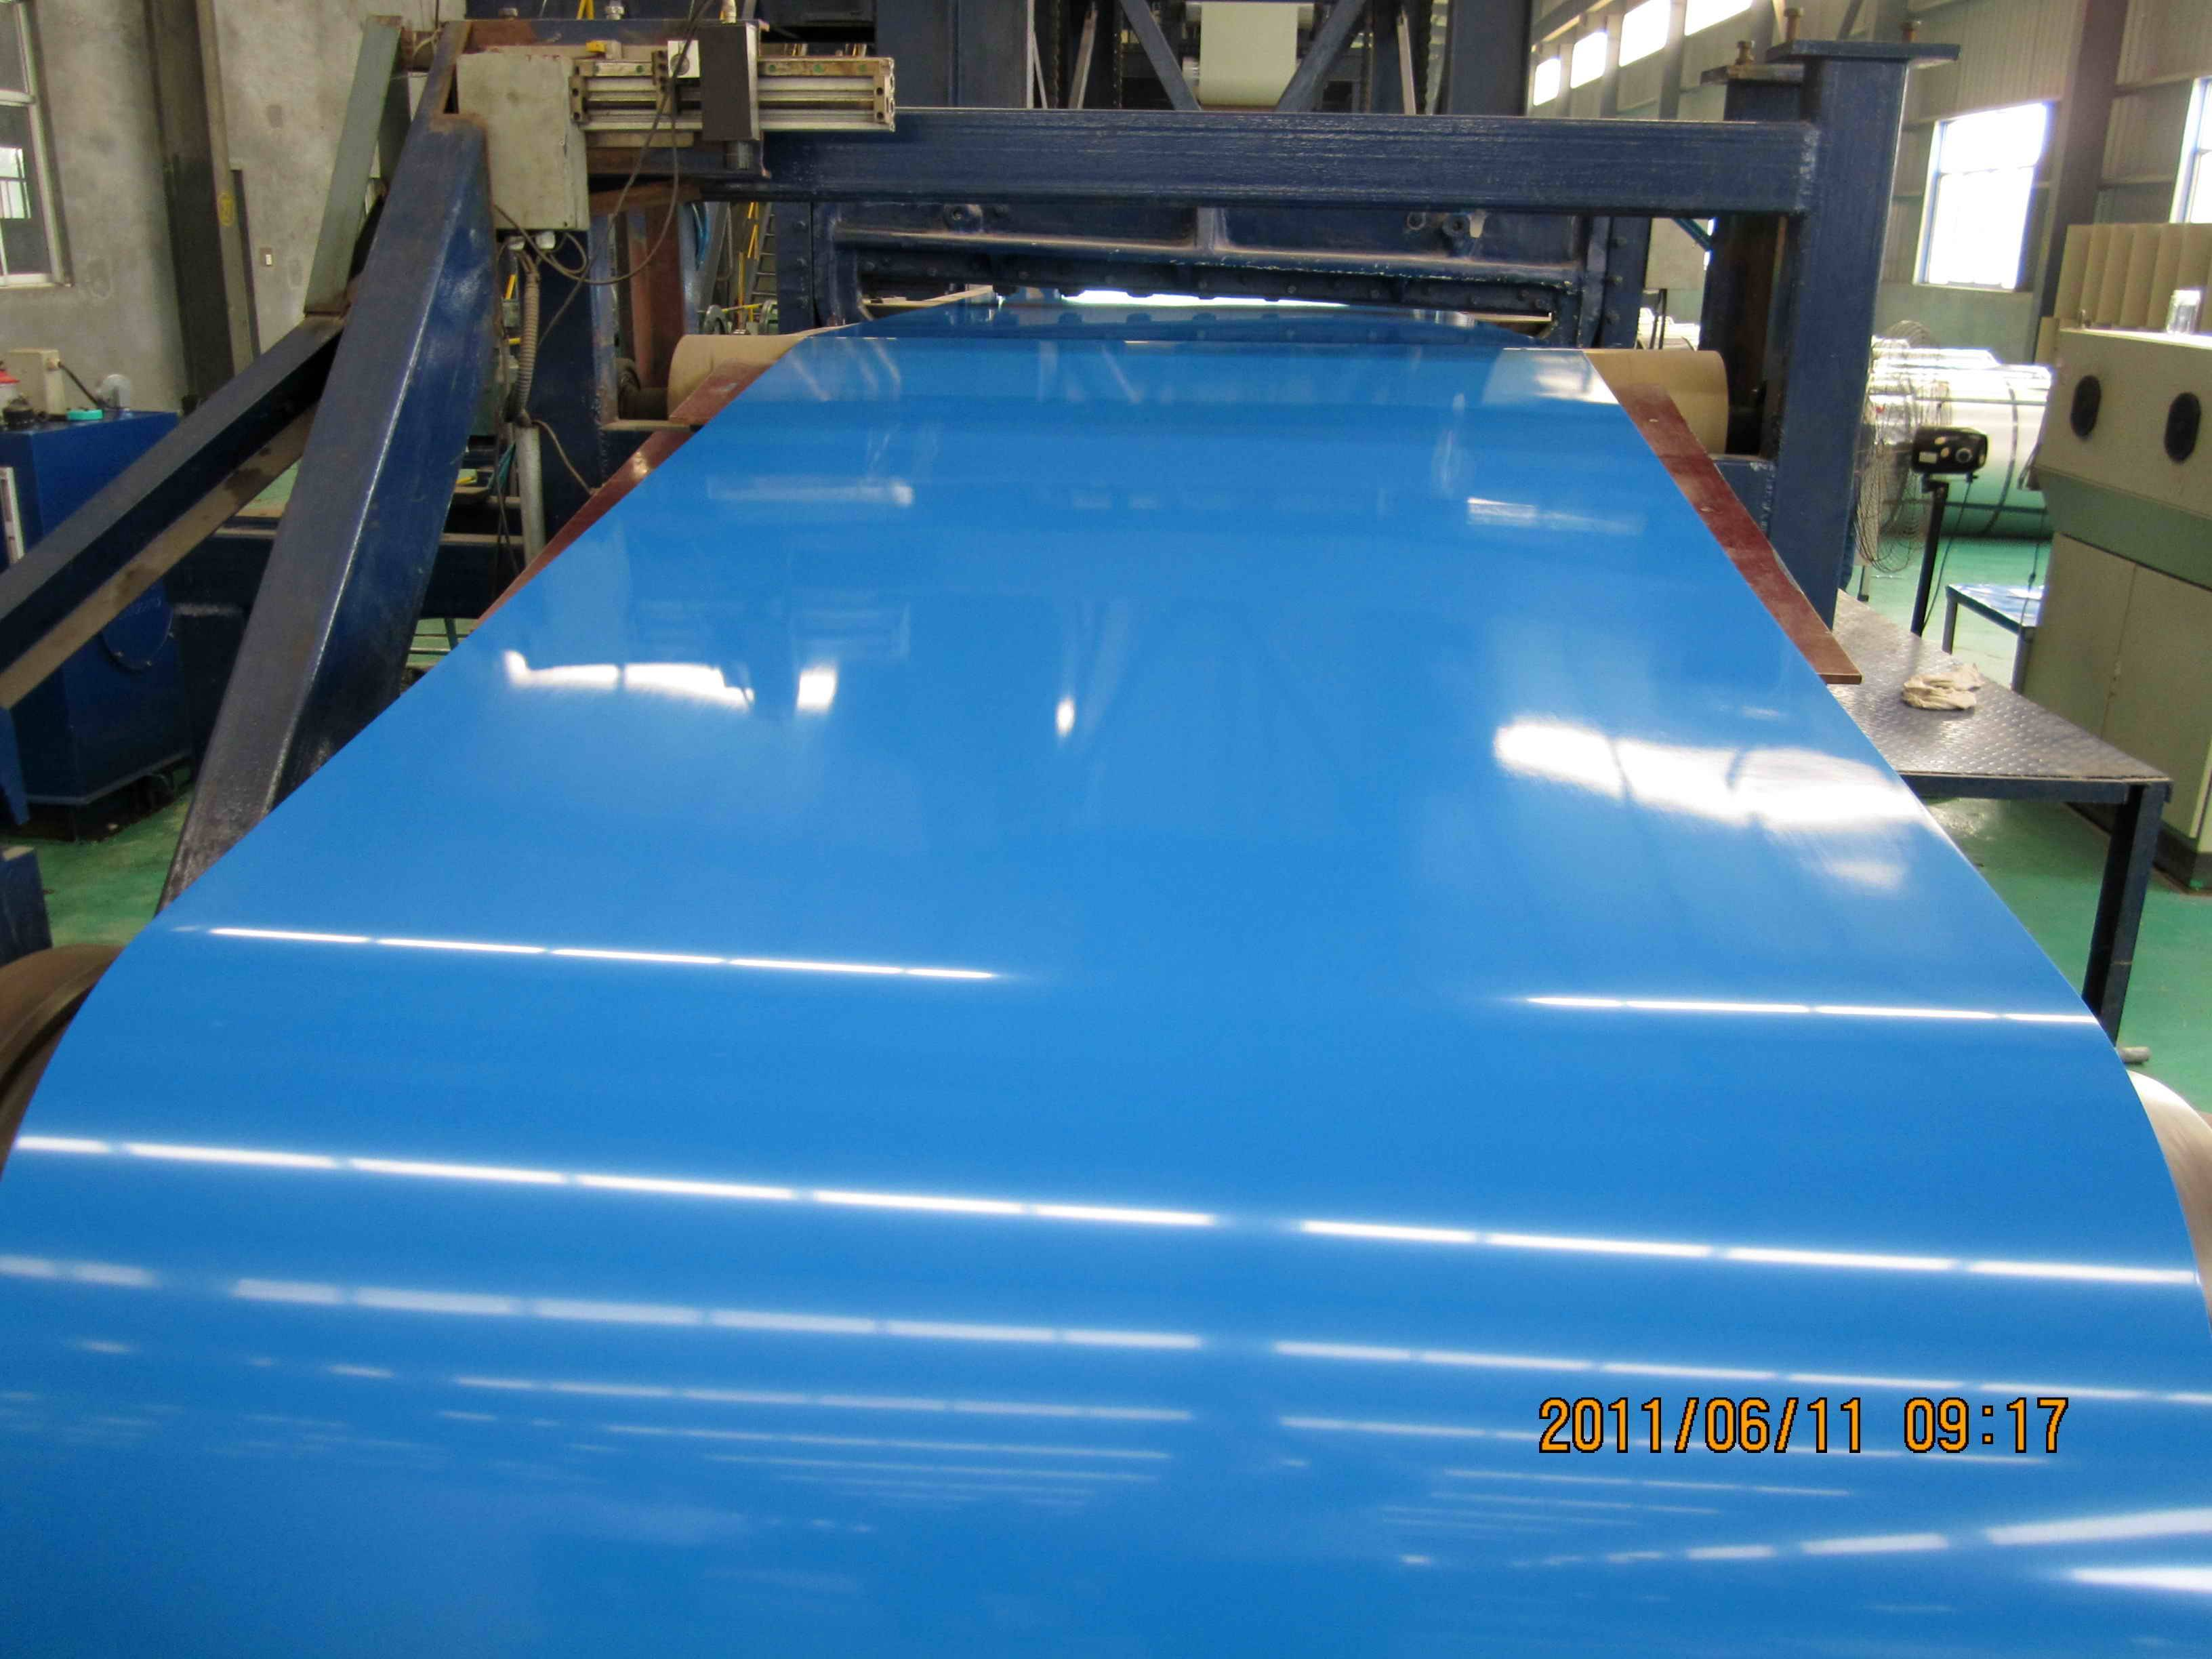 PPGI - Pre-Painted Hot Dipped Galvanized Steel - DX51D promotion, Chinese origin, low price offer